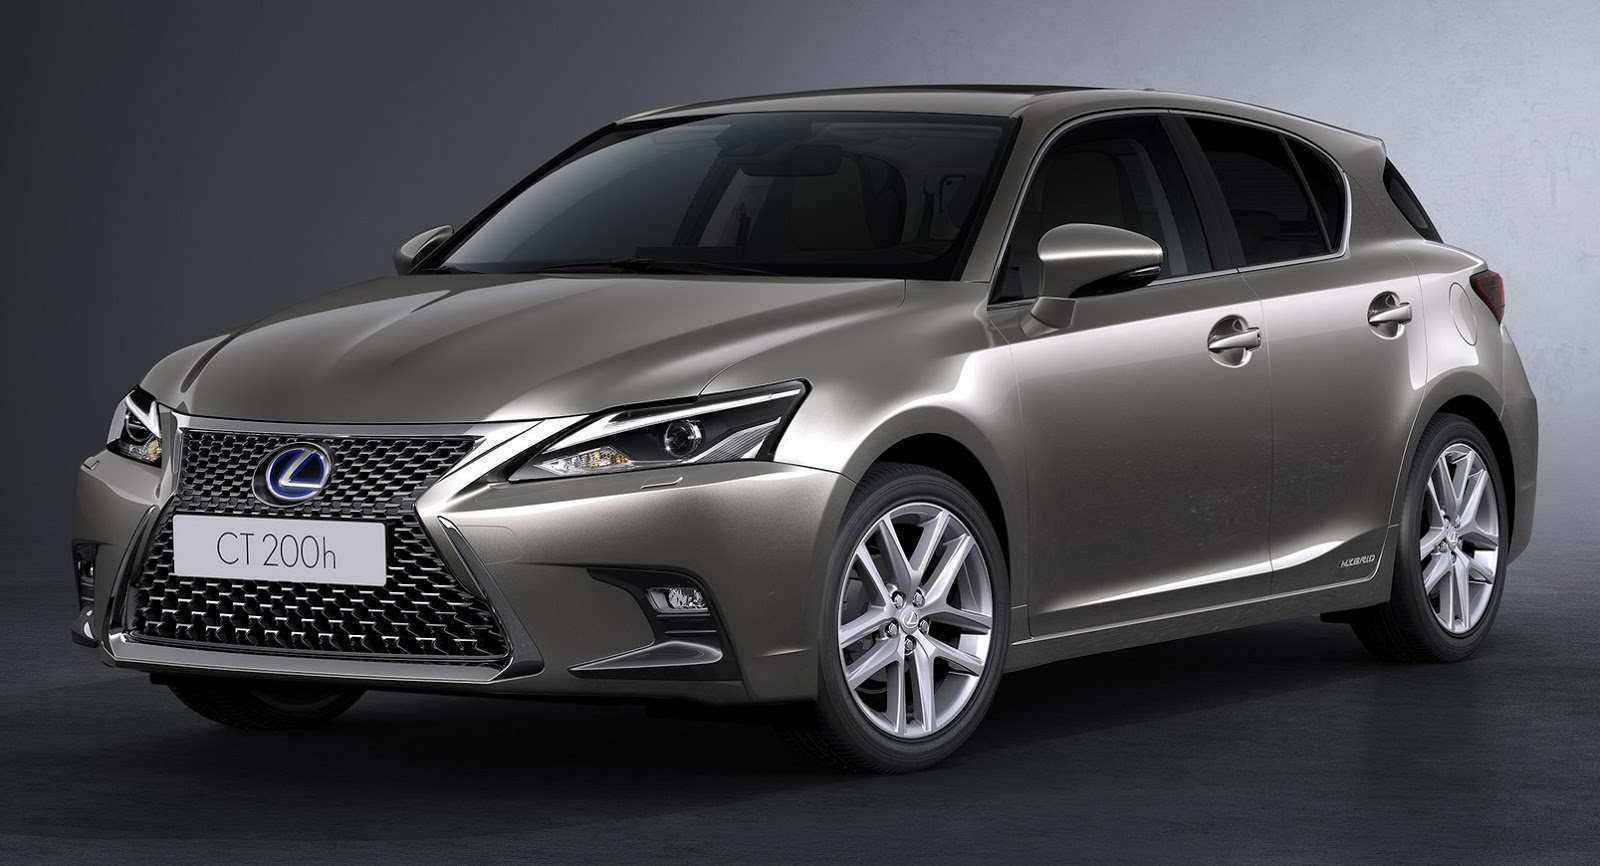 35 Best Review 2019 Lexus Ct Specs by 2019 Lexus Ct